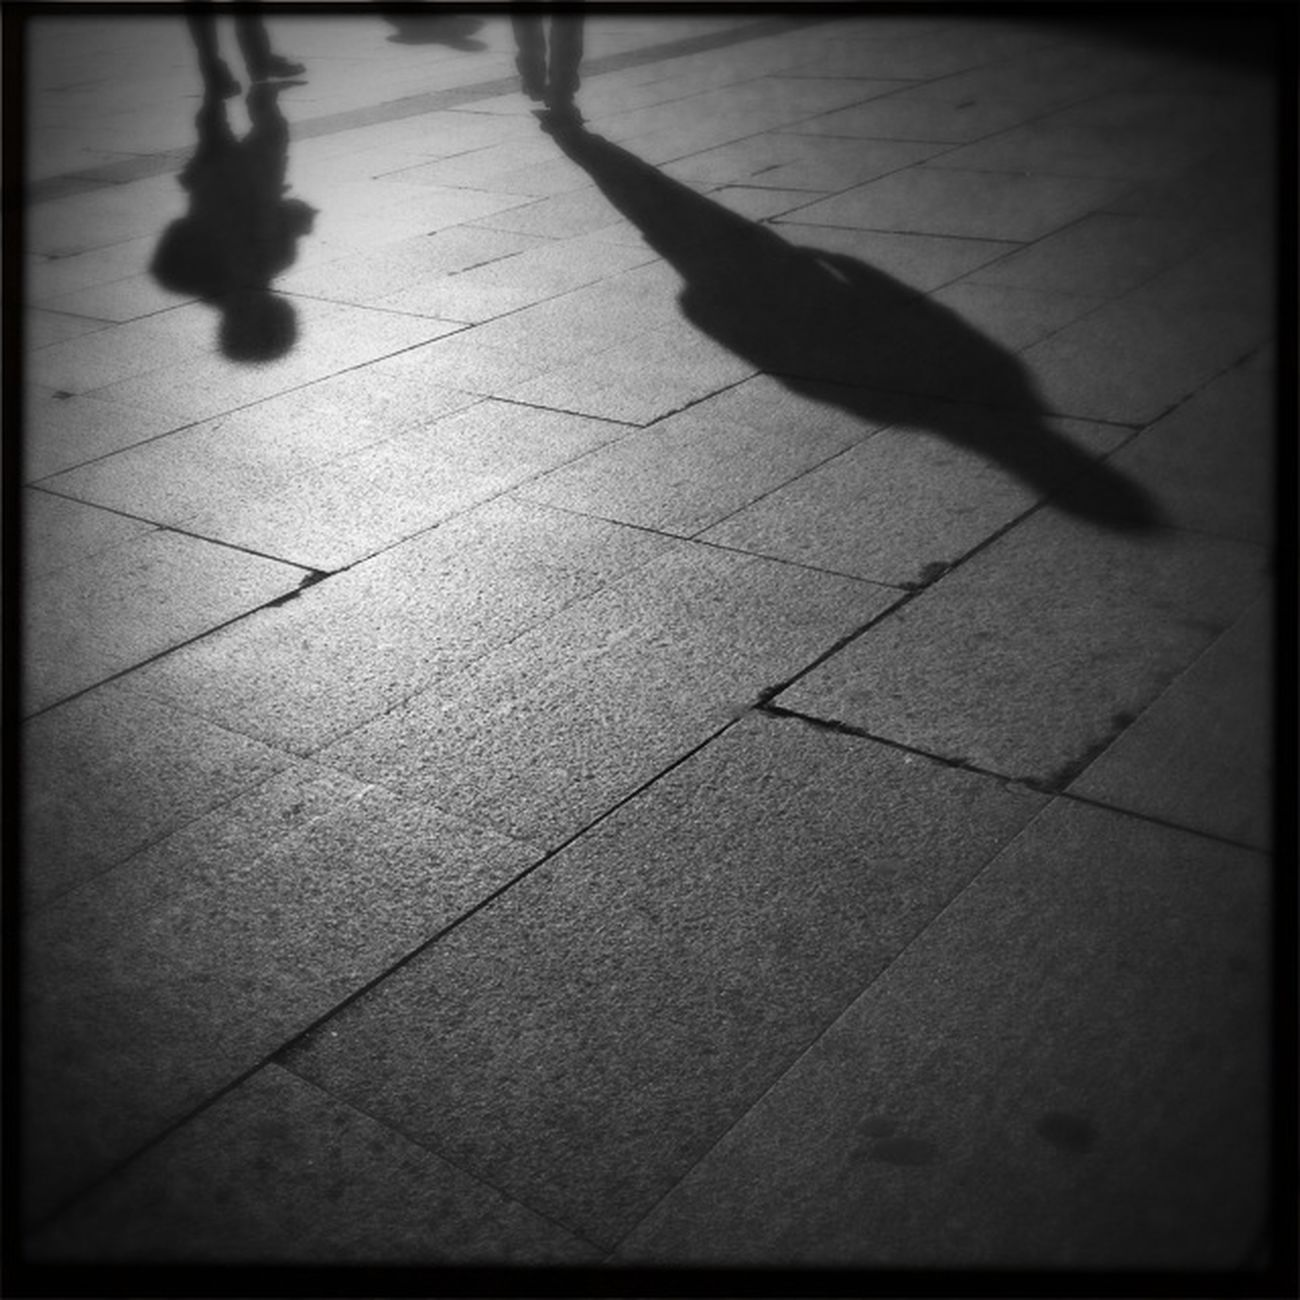 Streetphotography Hipstamatic Blackandwhite Shadows